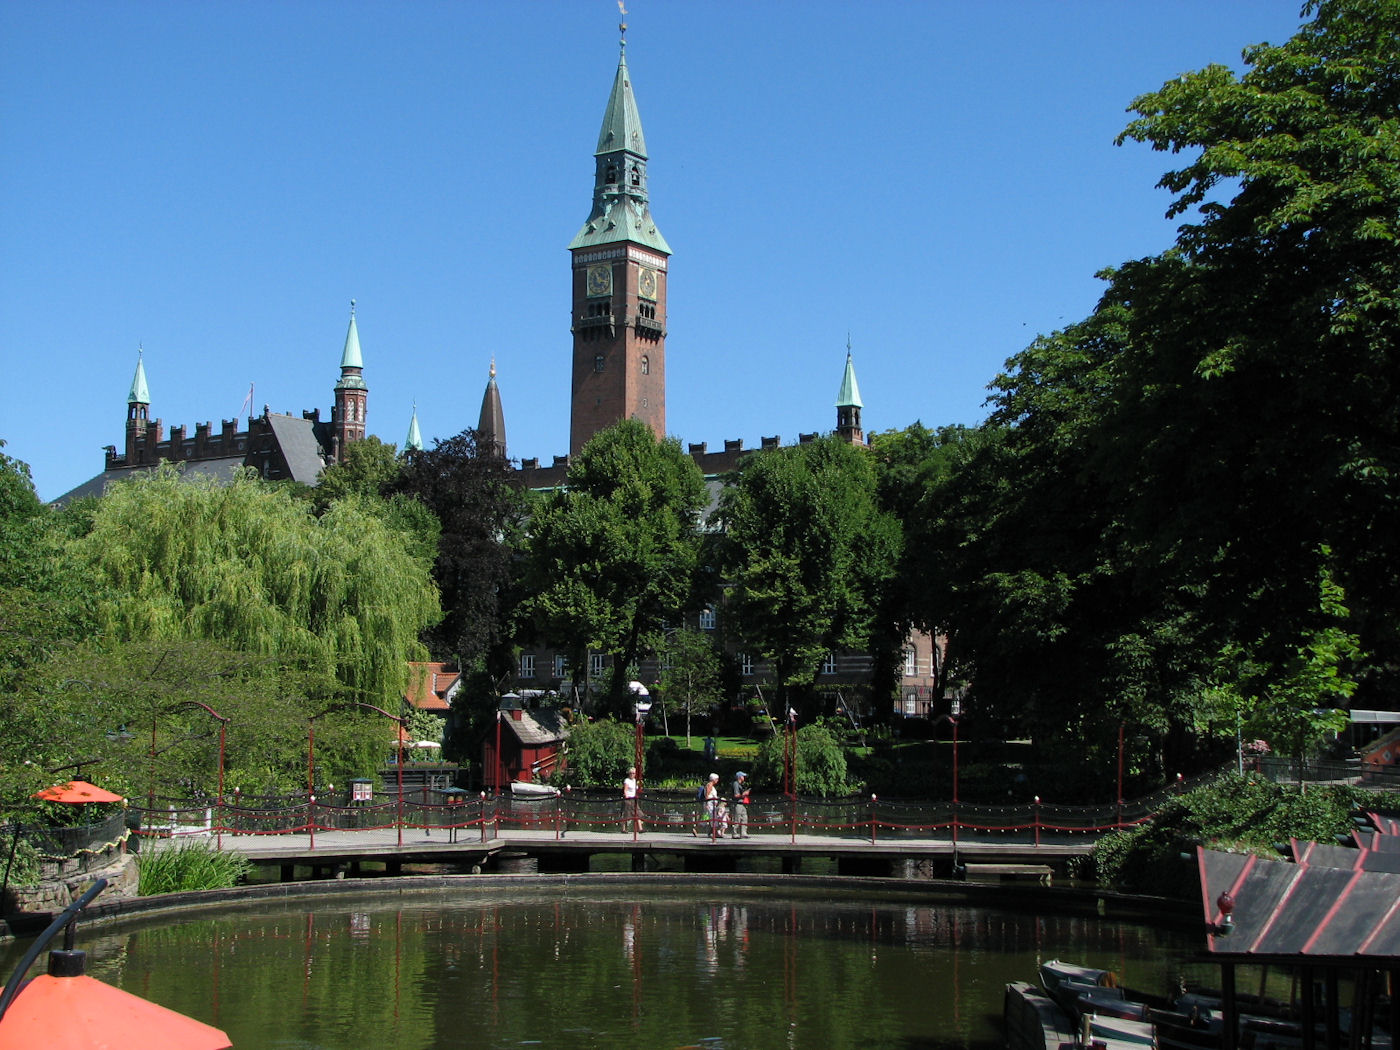 Copenhagen City Hall from inside Tivoli Gardens